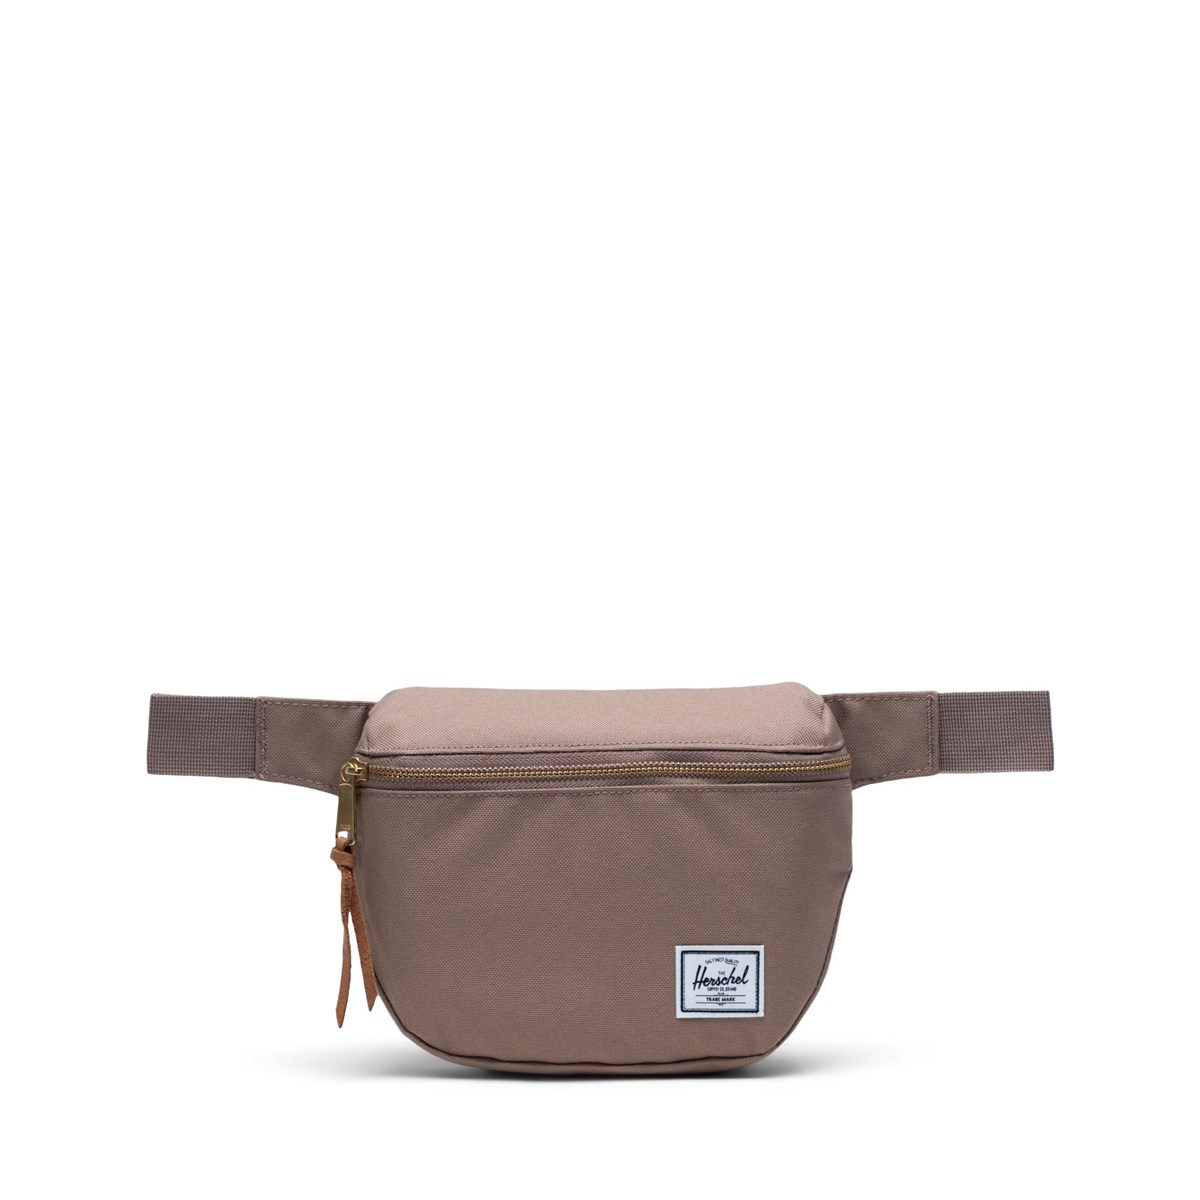 Fifteen Hip Pack in Beige